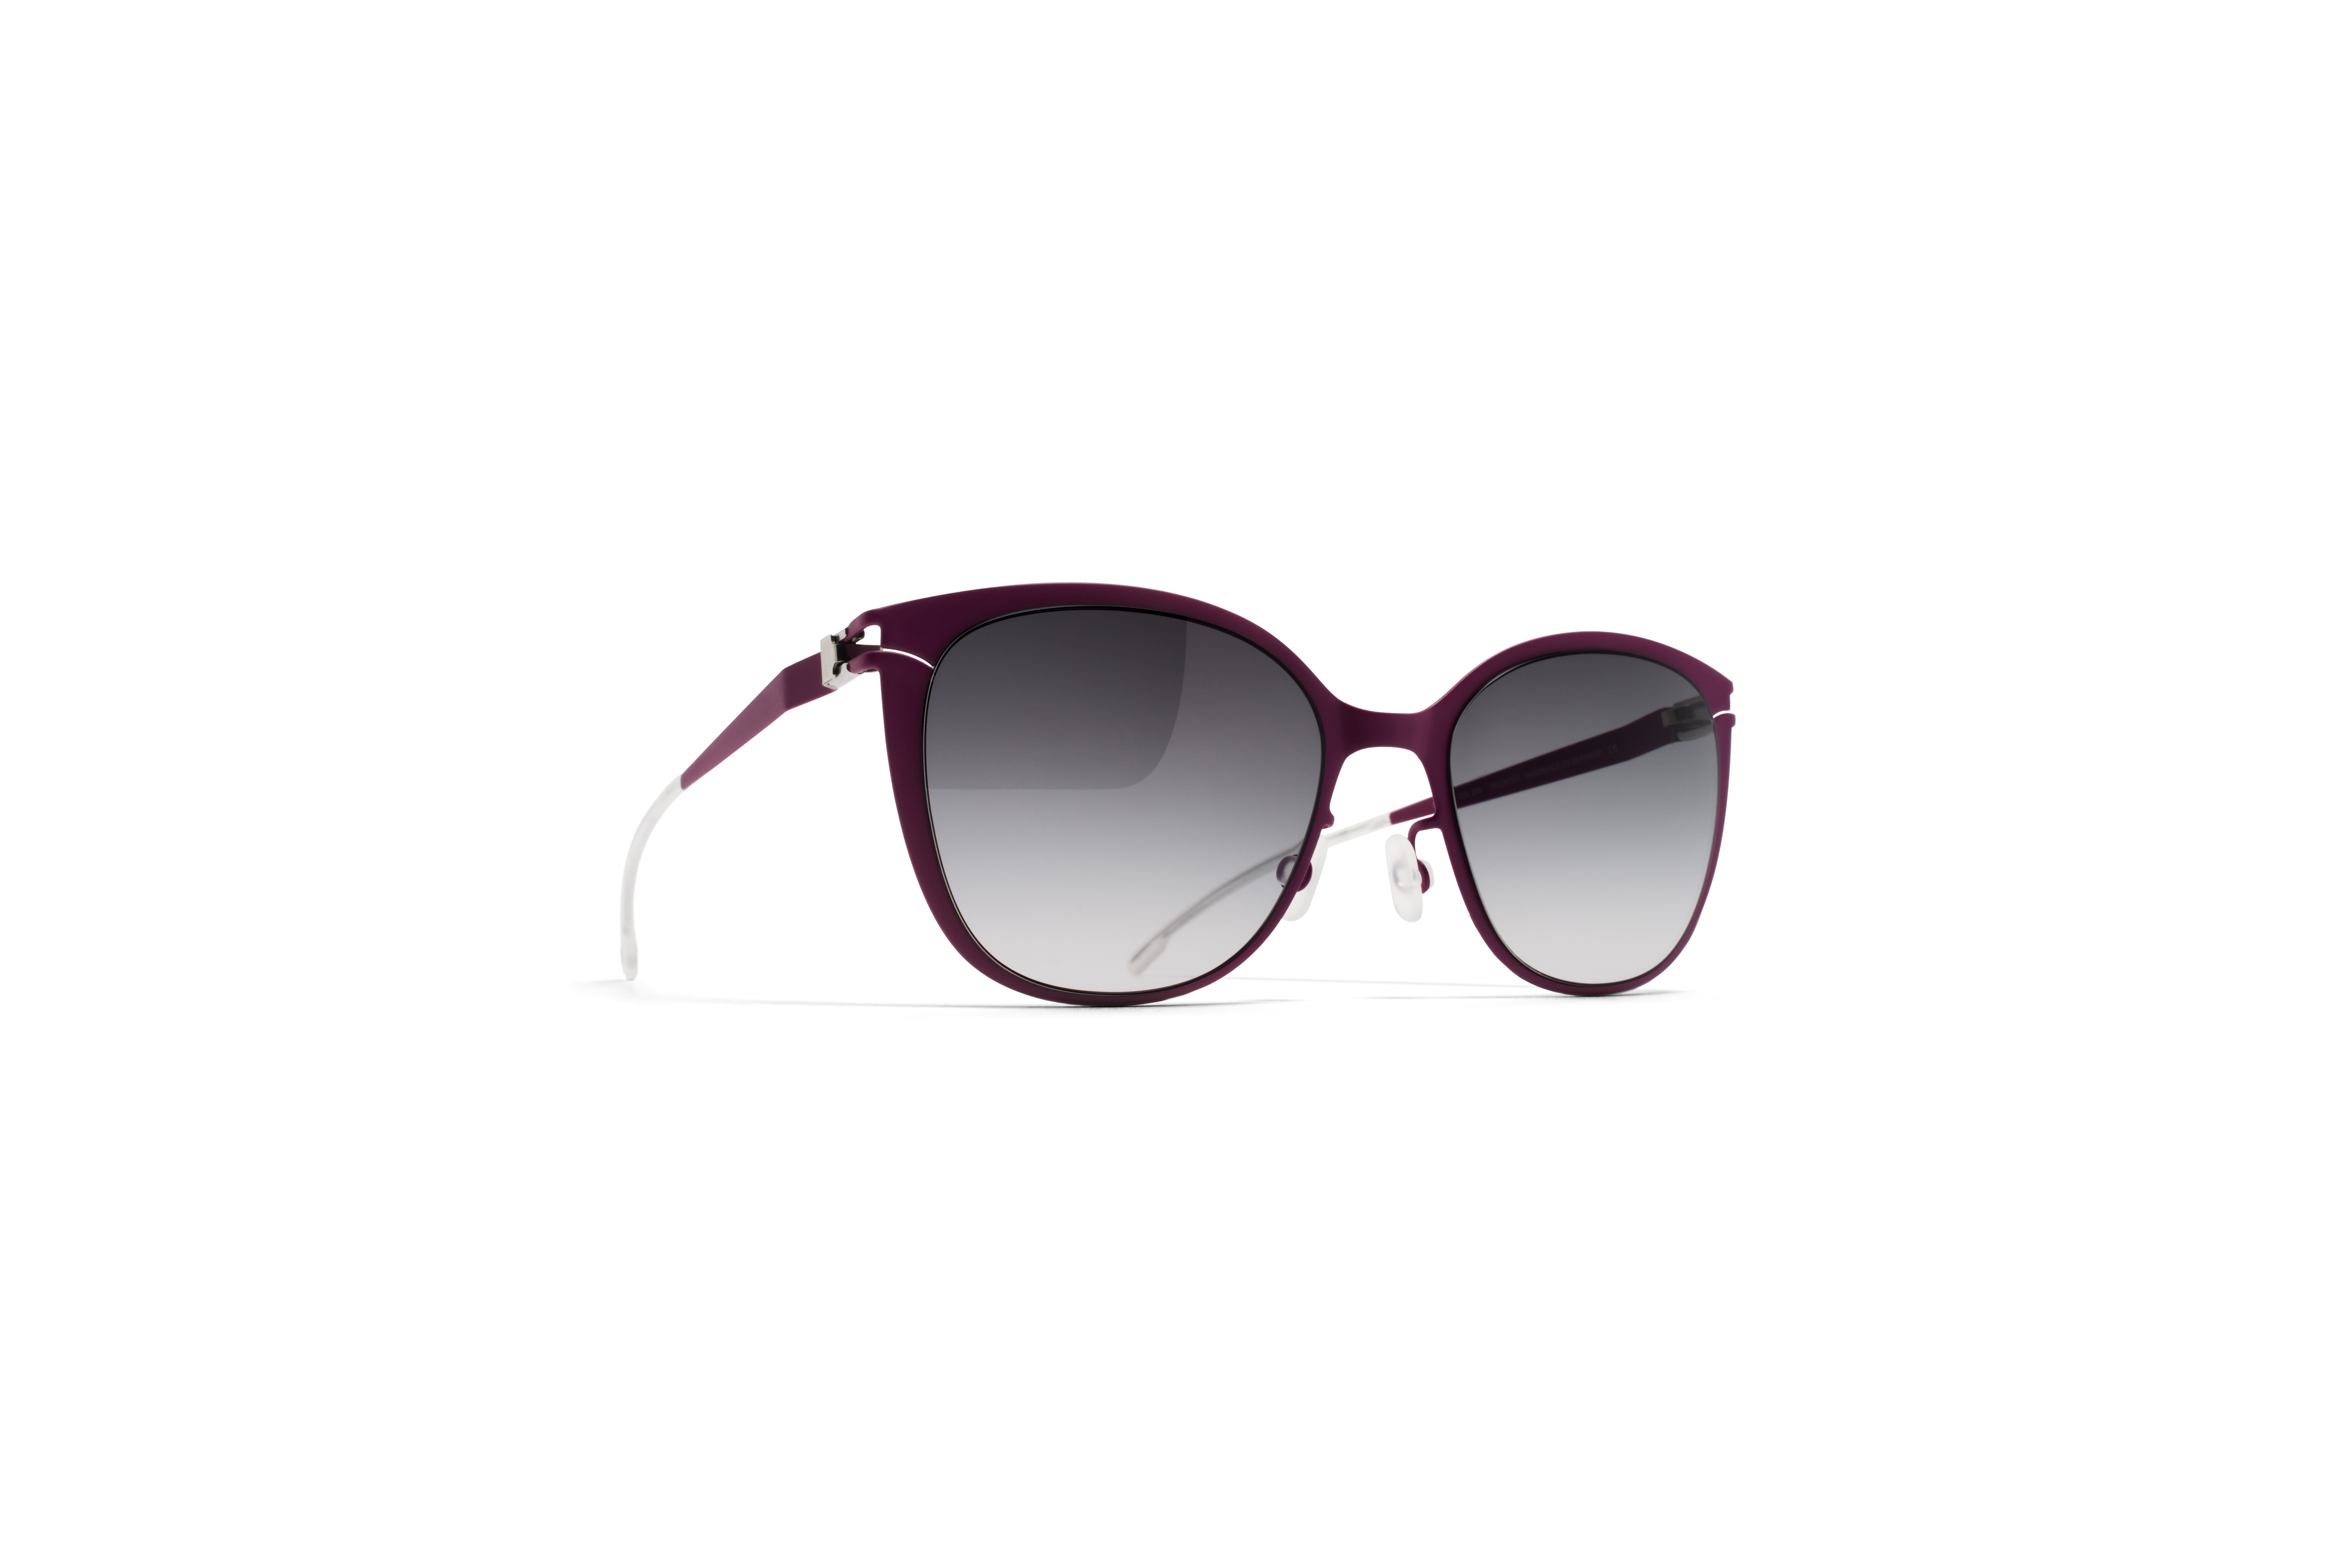 MYKITA First Sun Kea R2 Lilac Black Gradient